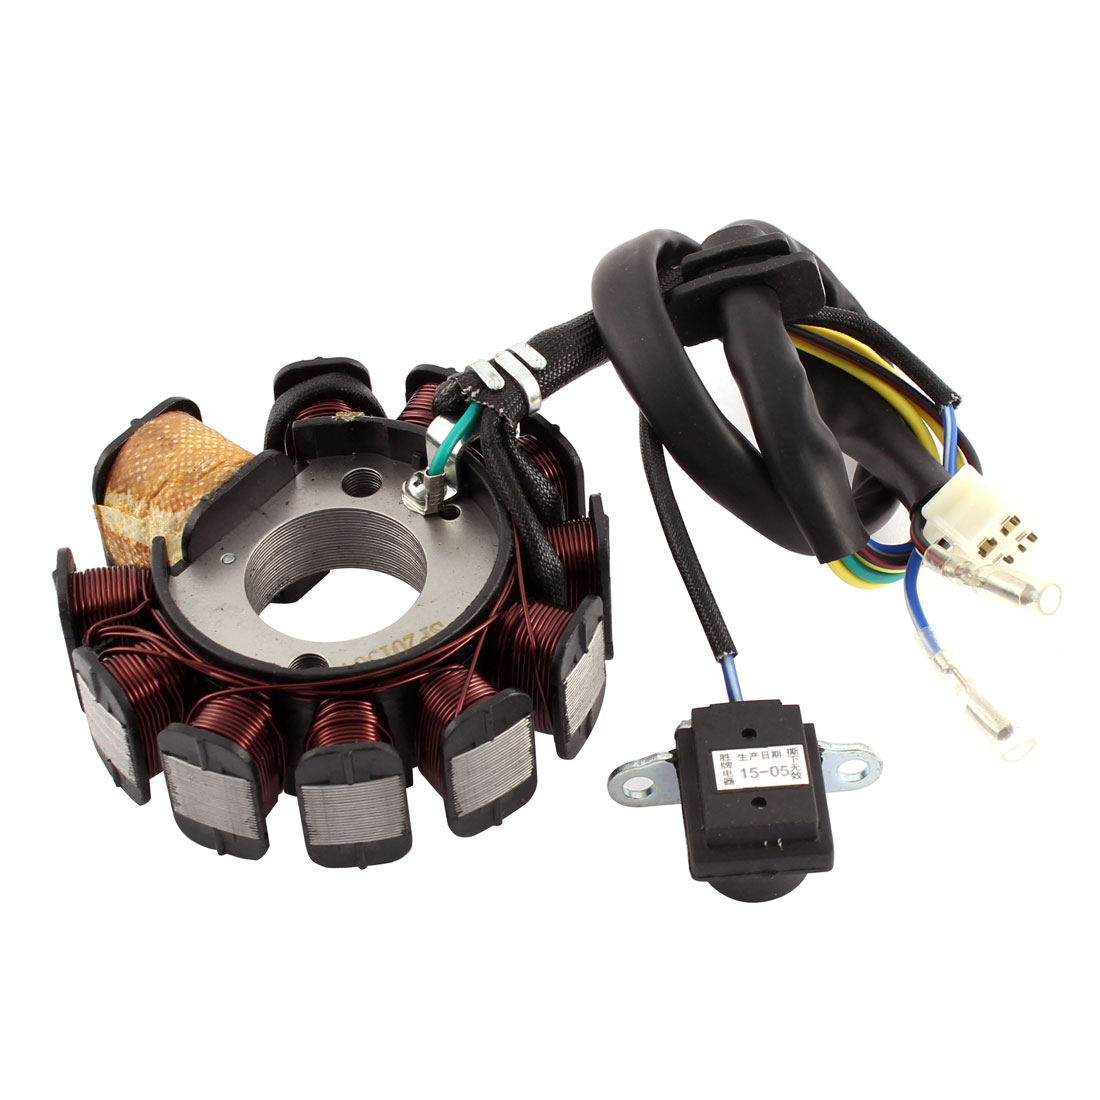 Motorbike Round Modified Part Copper Magneto Engine Stator Generator Charging Coil 4A 35W GY6125-11